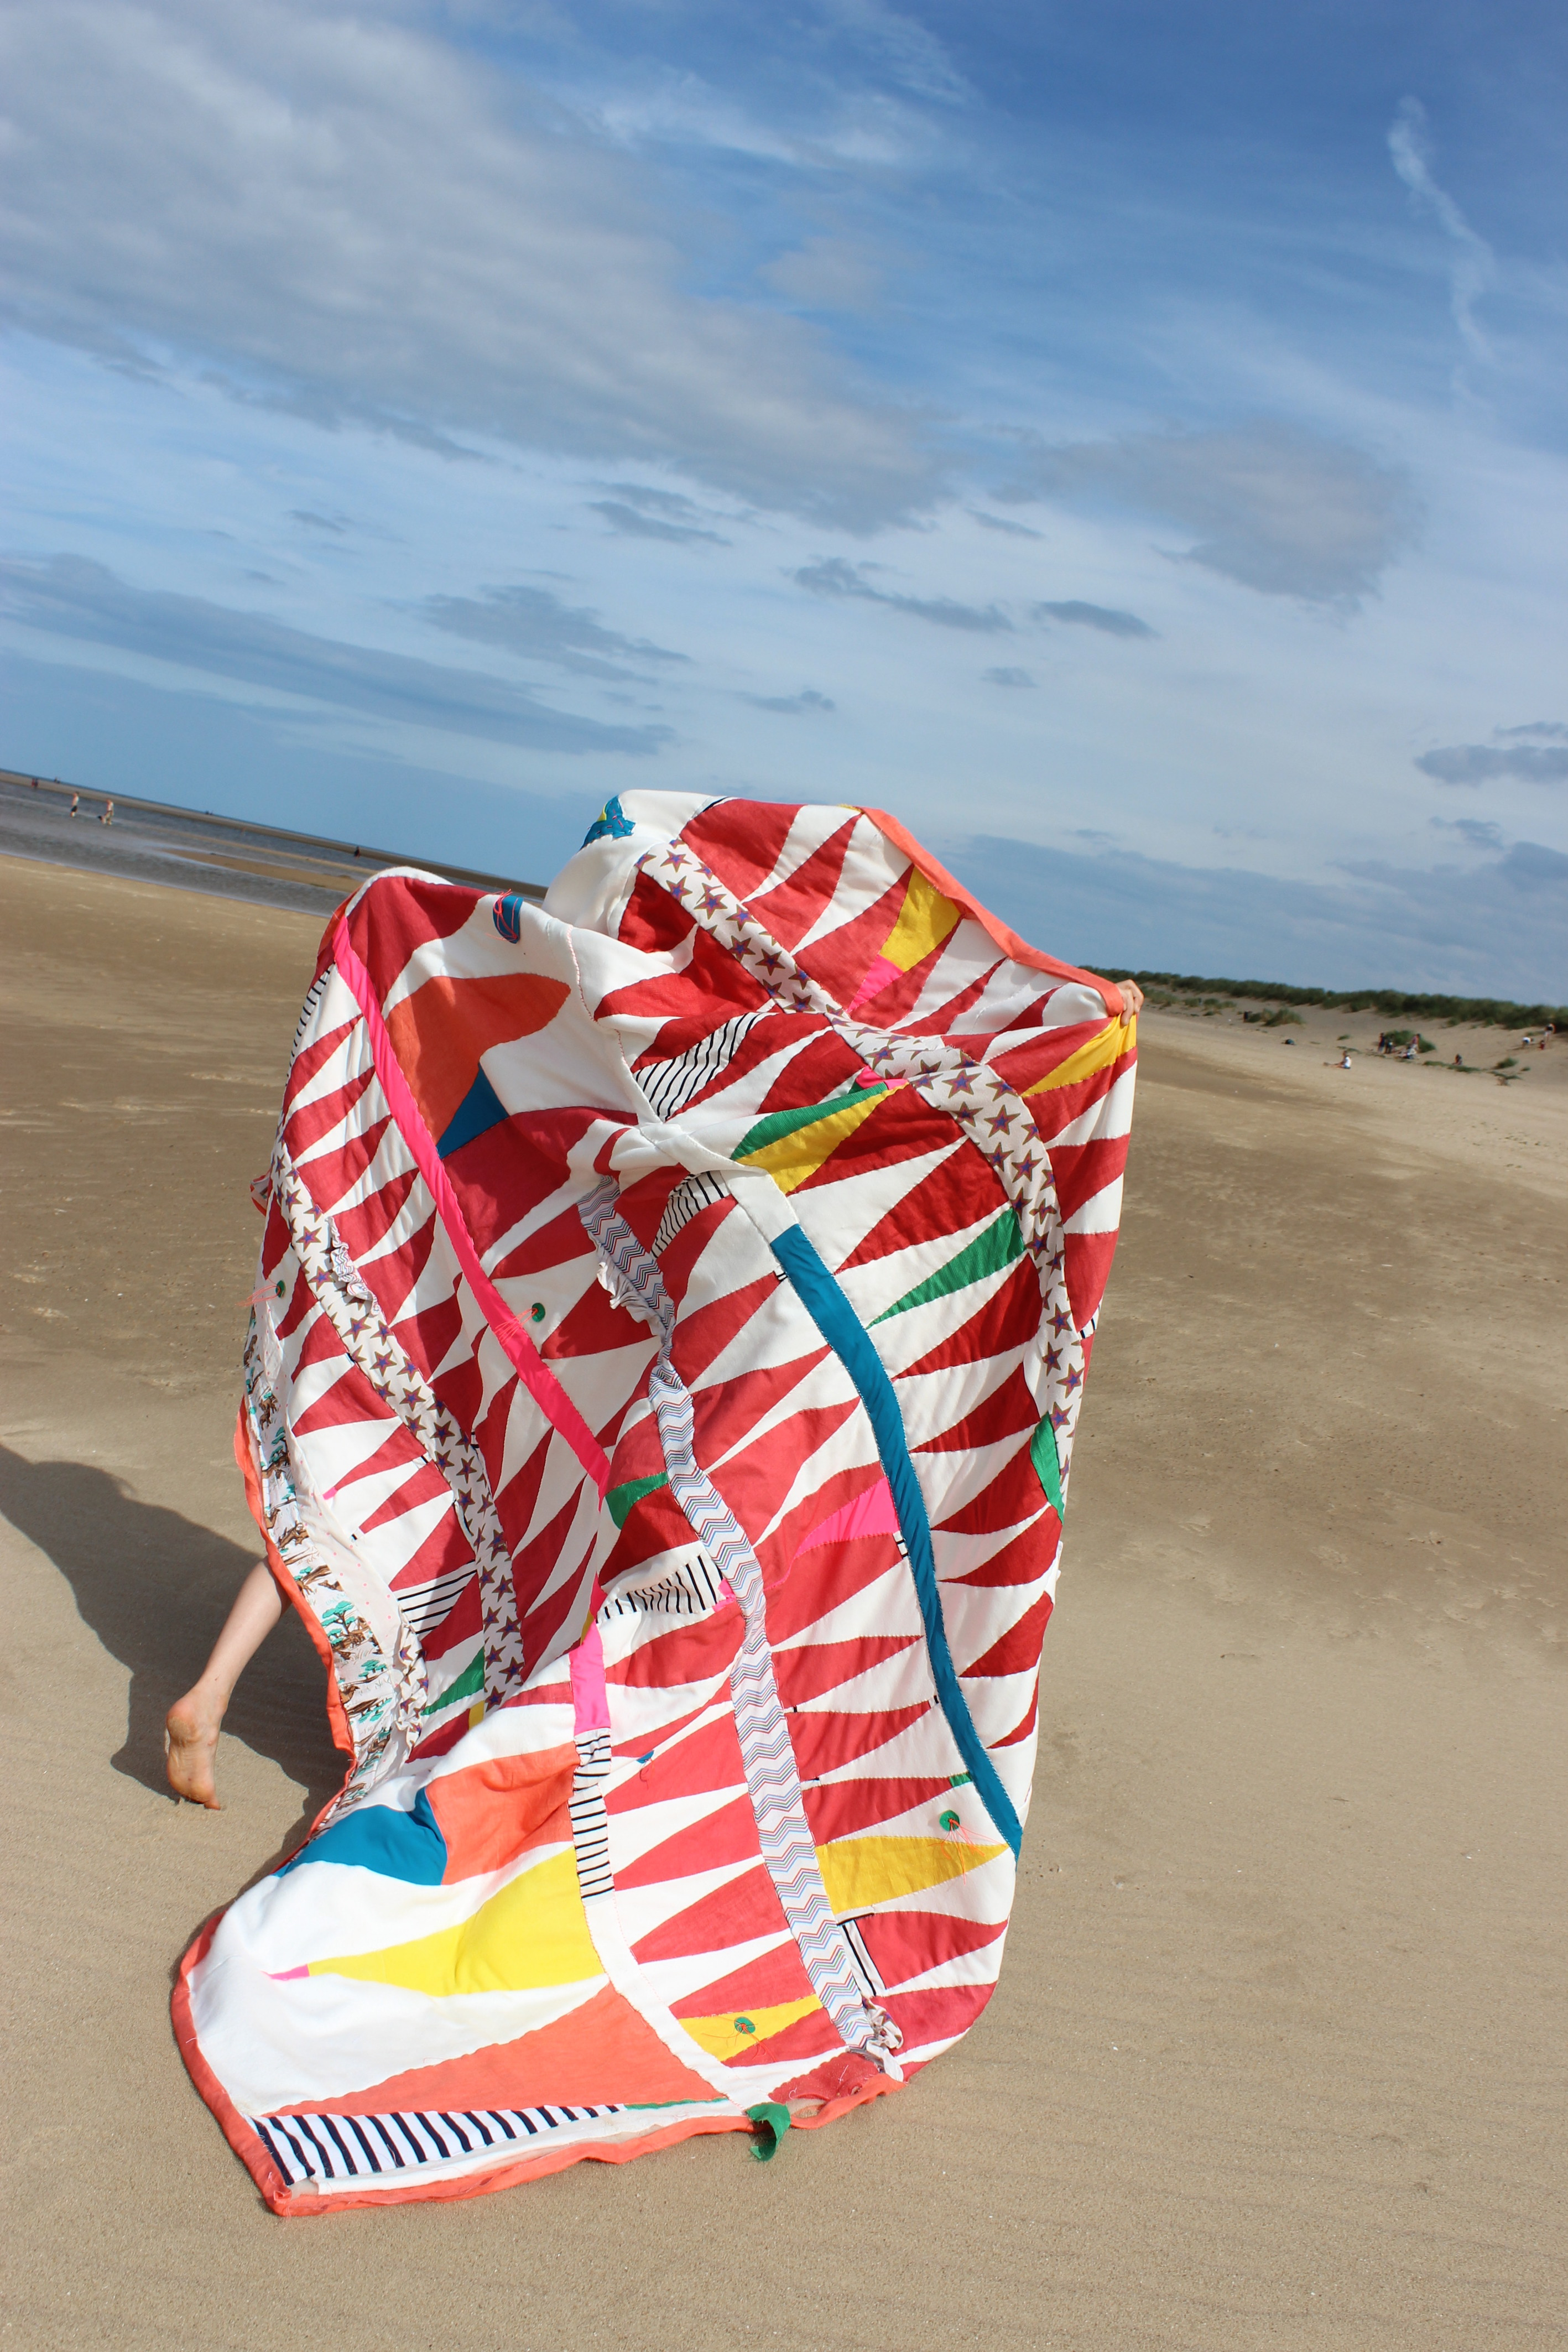 A photo of a quilt being carried overhead on the beach